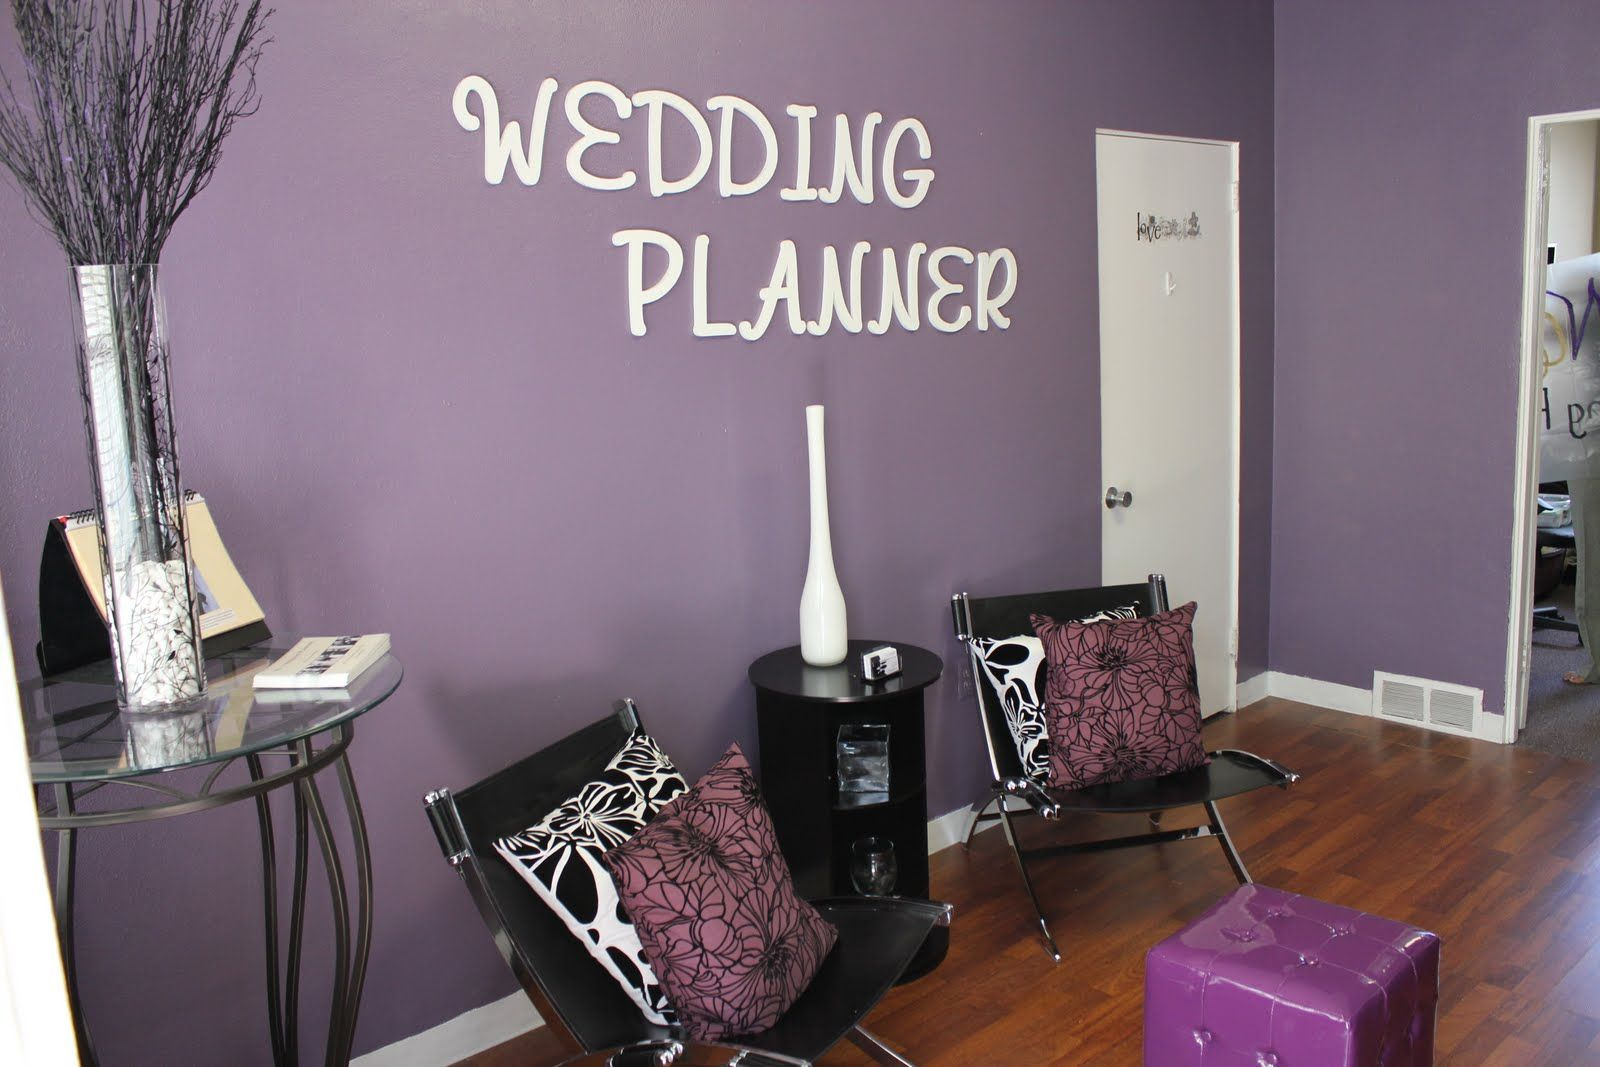 like the color of the wall and wedding planner letters for